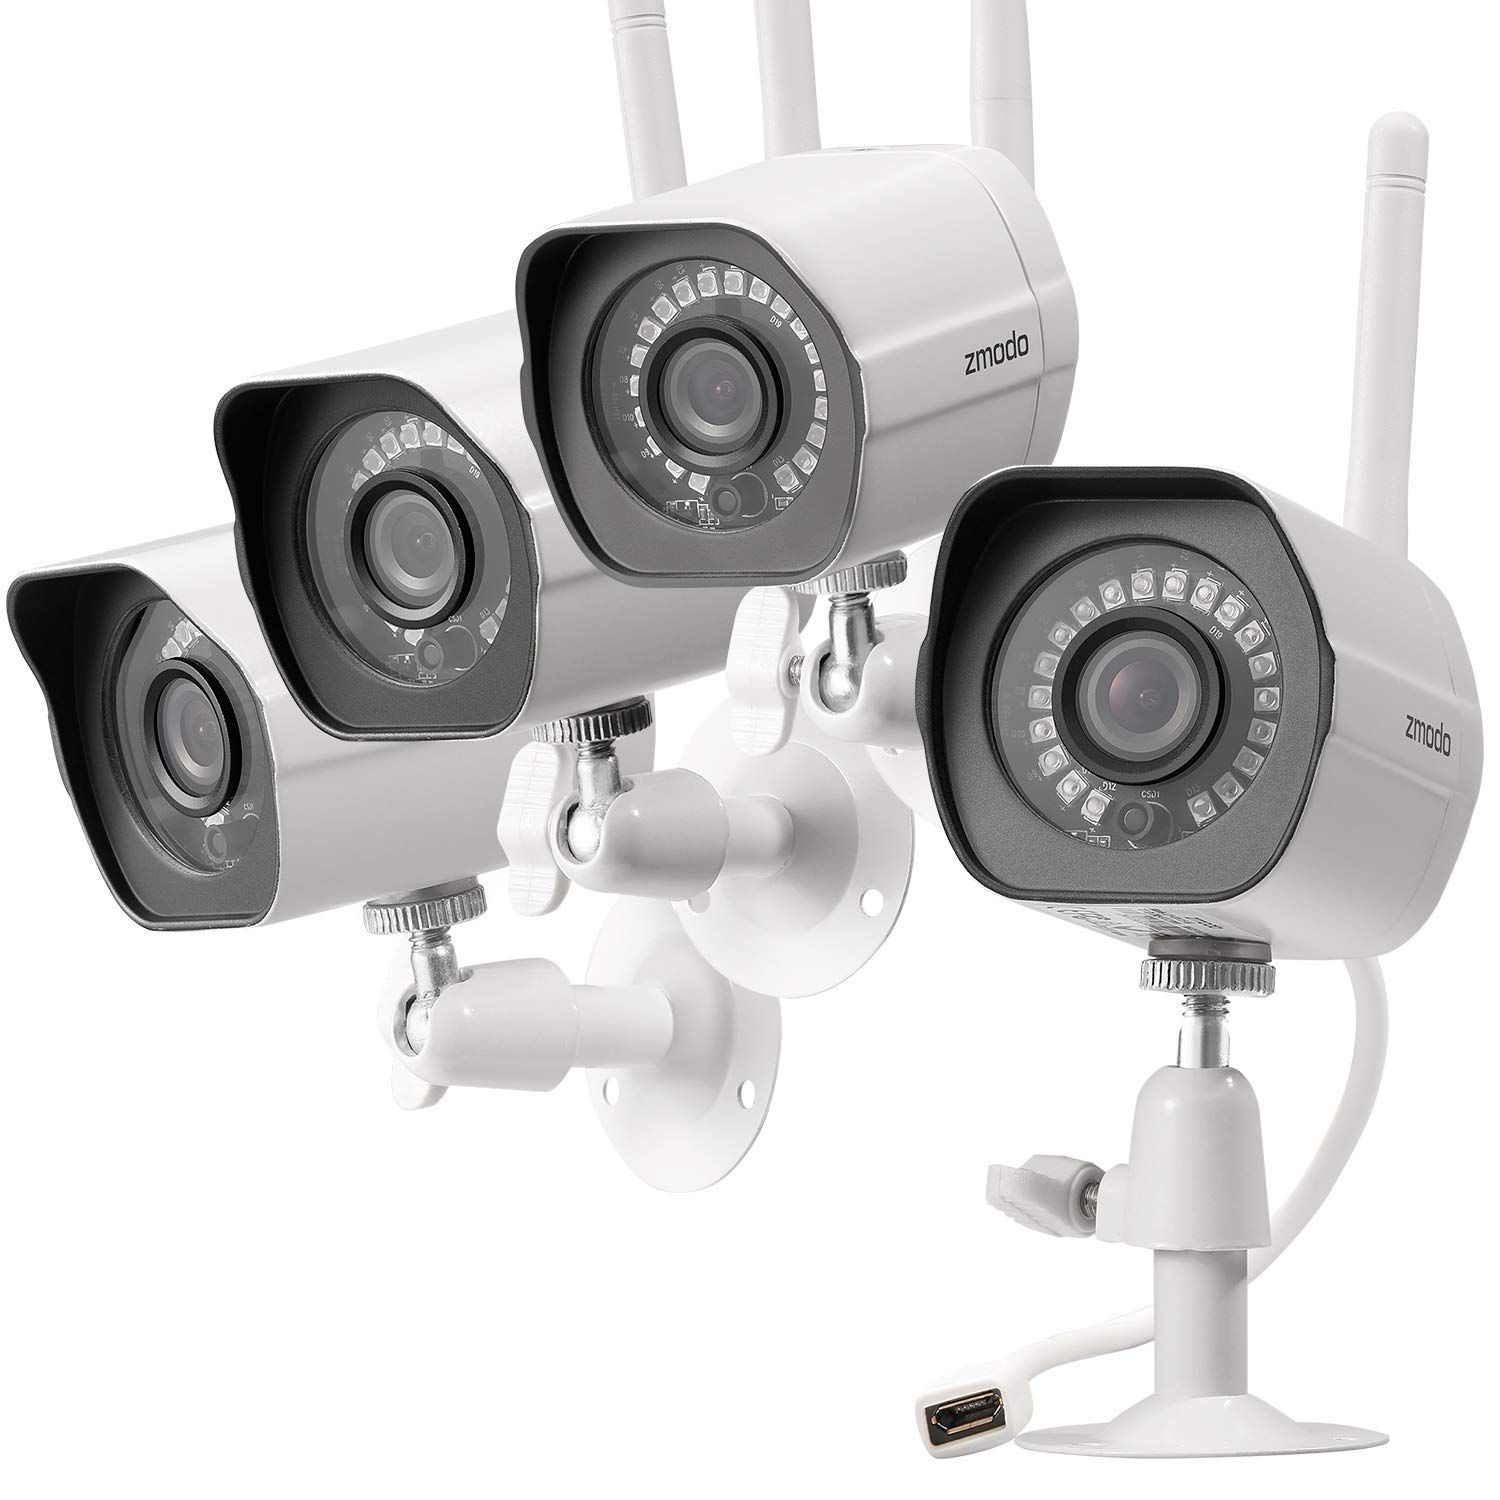 The Best Intelligent Home Security Systems Of 2019 Smarthome Smartho Wireless Security Camera System Security Camera Installation Security Cameras For Home